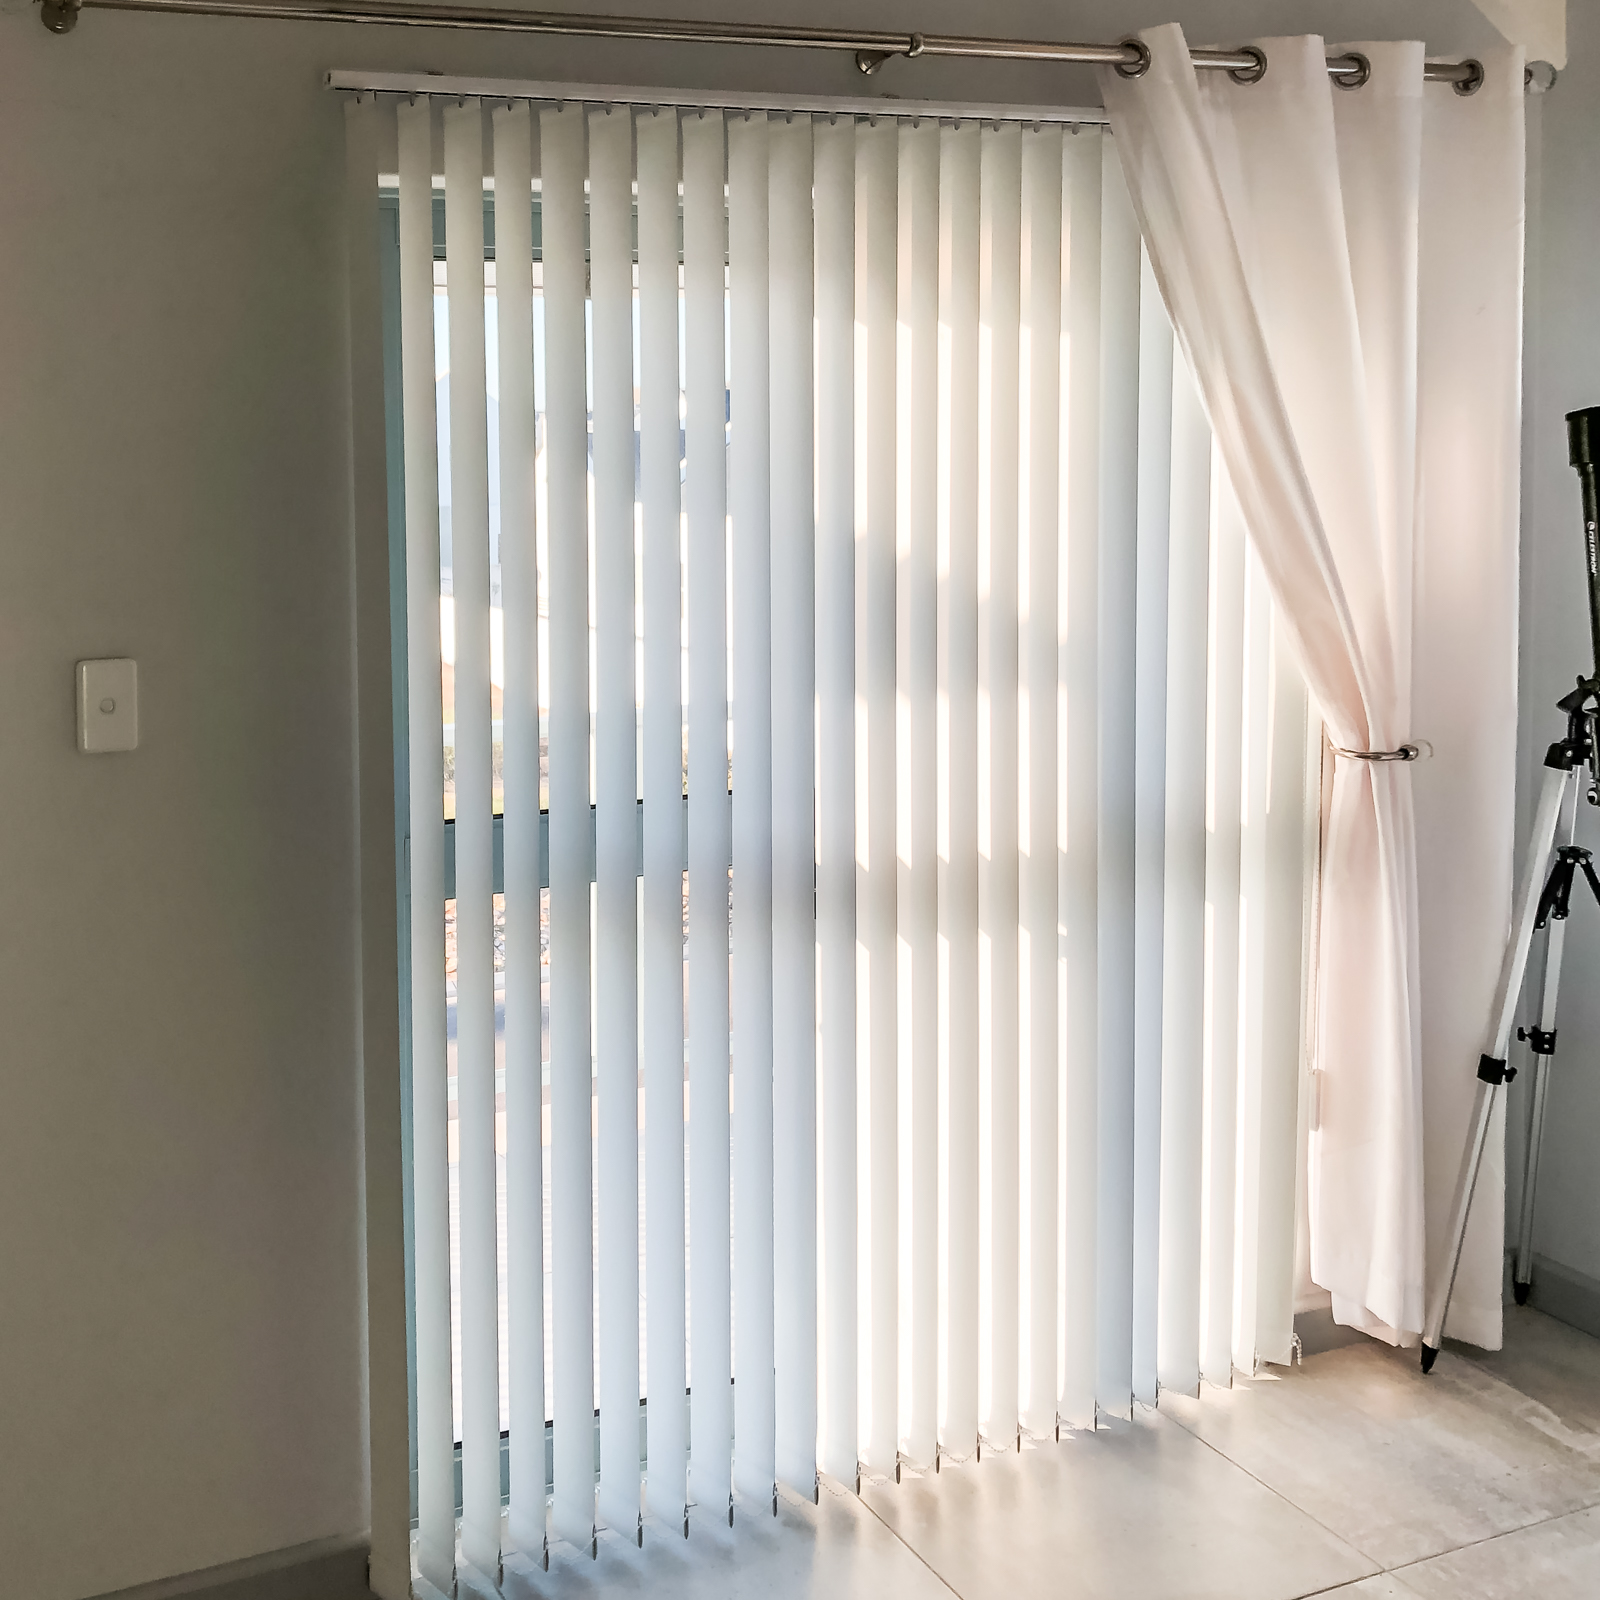 Vertical Blinds Are Beneficial In So Many Ways And May